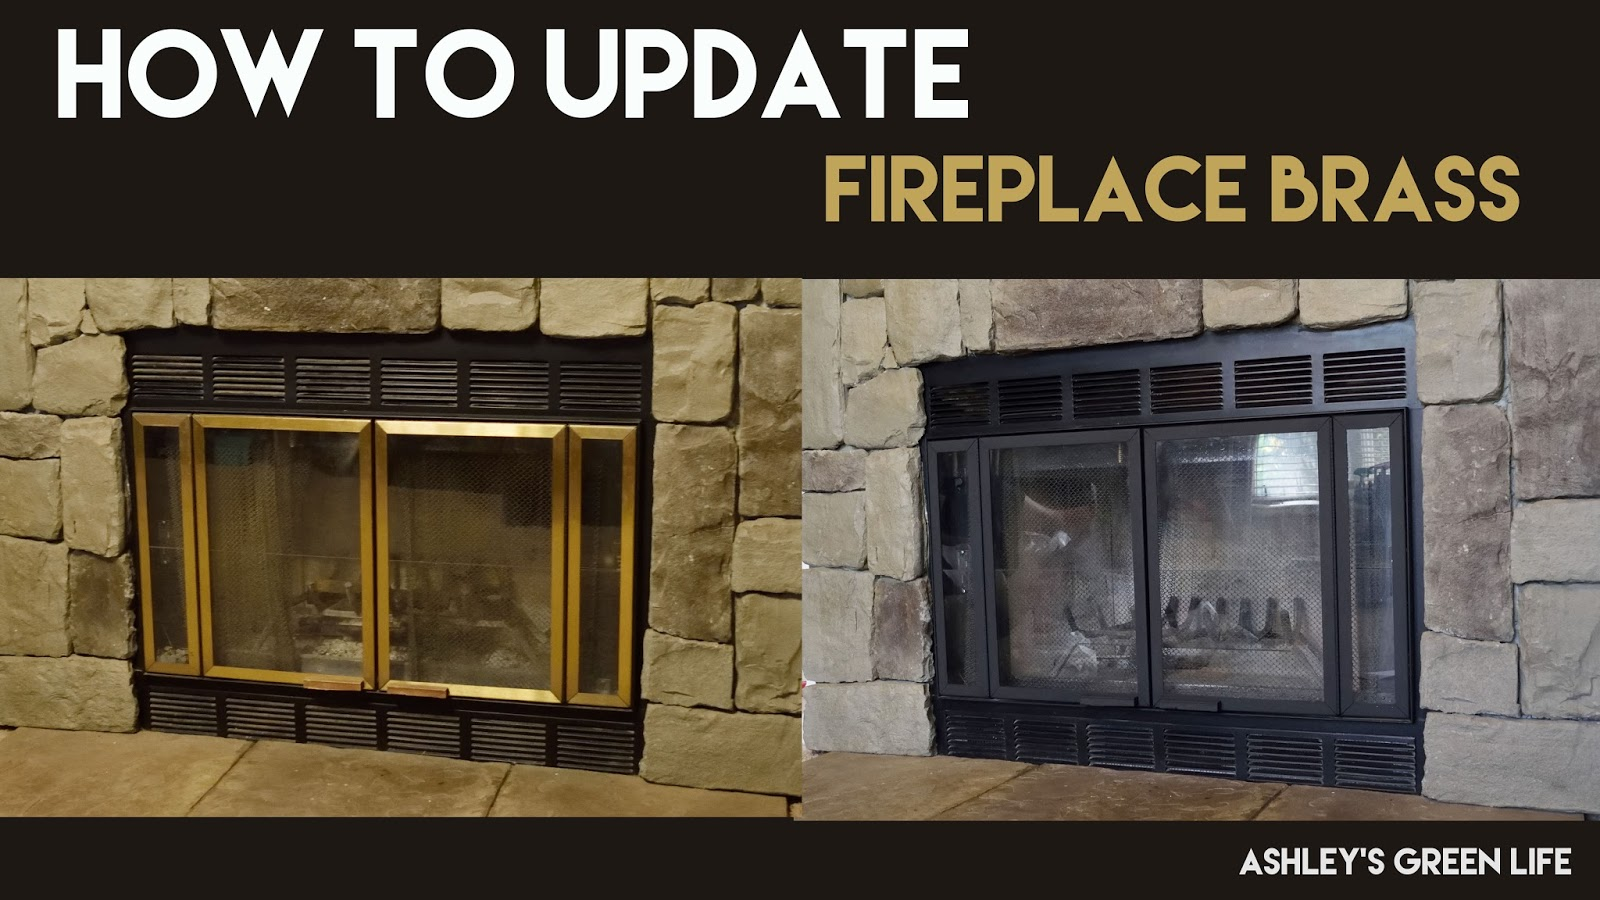 Ashley's Green Life: How to Update Fireplace Brass